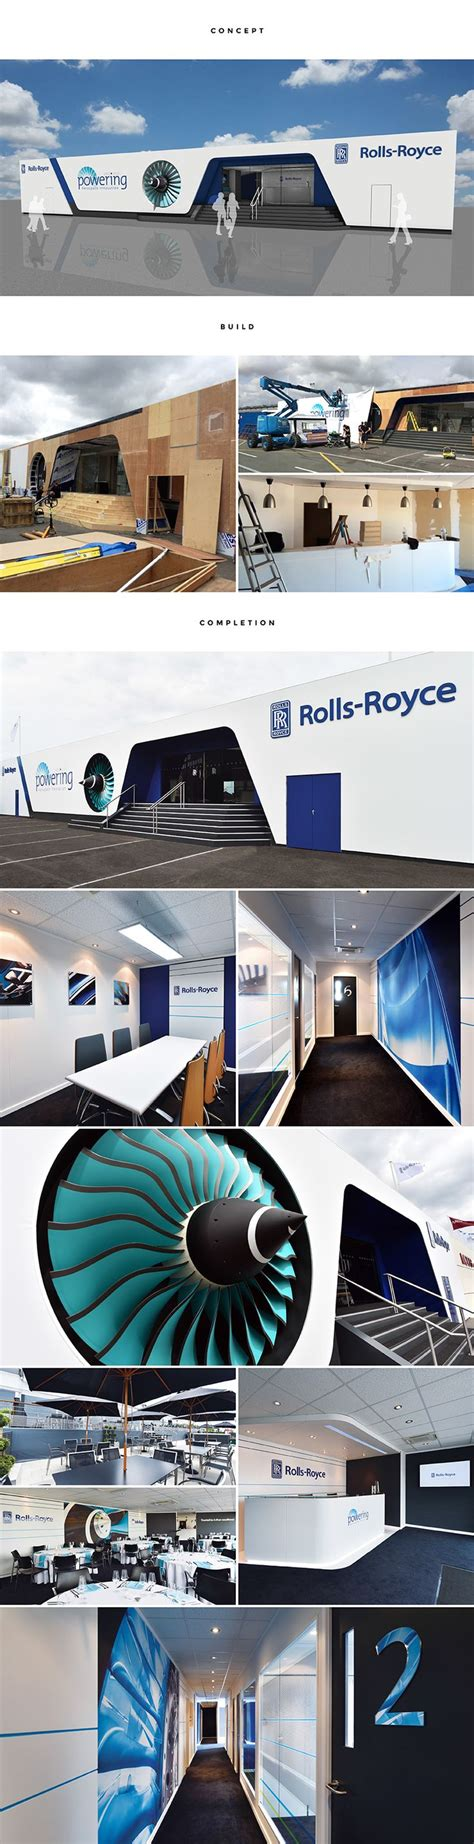 Project Management Rolls Royce Promoting 100 Years Of Rolls Royce Delivering Innovation